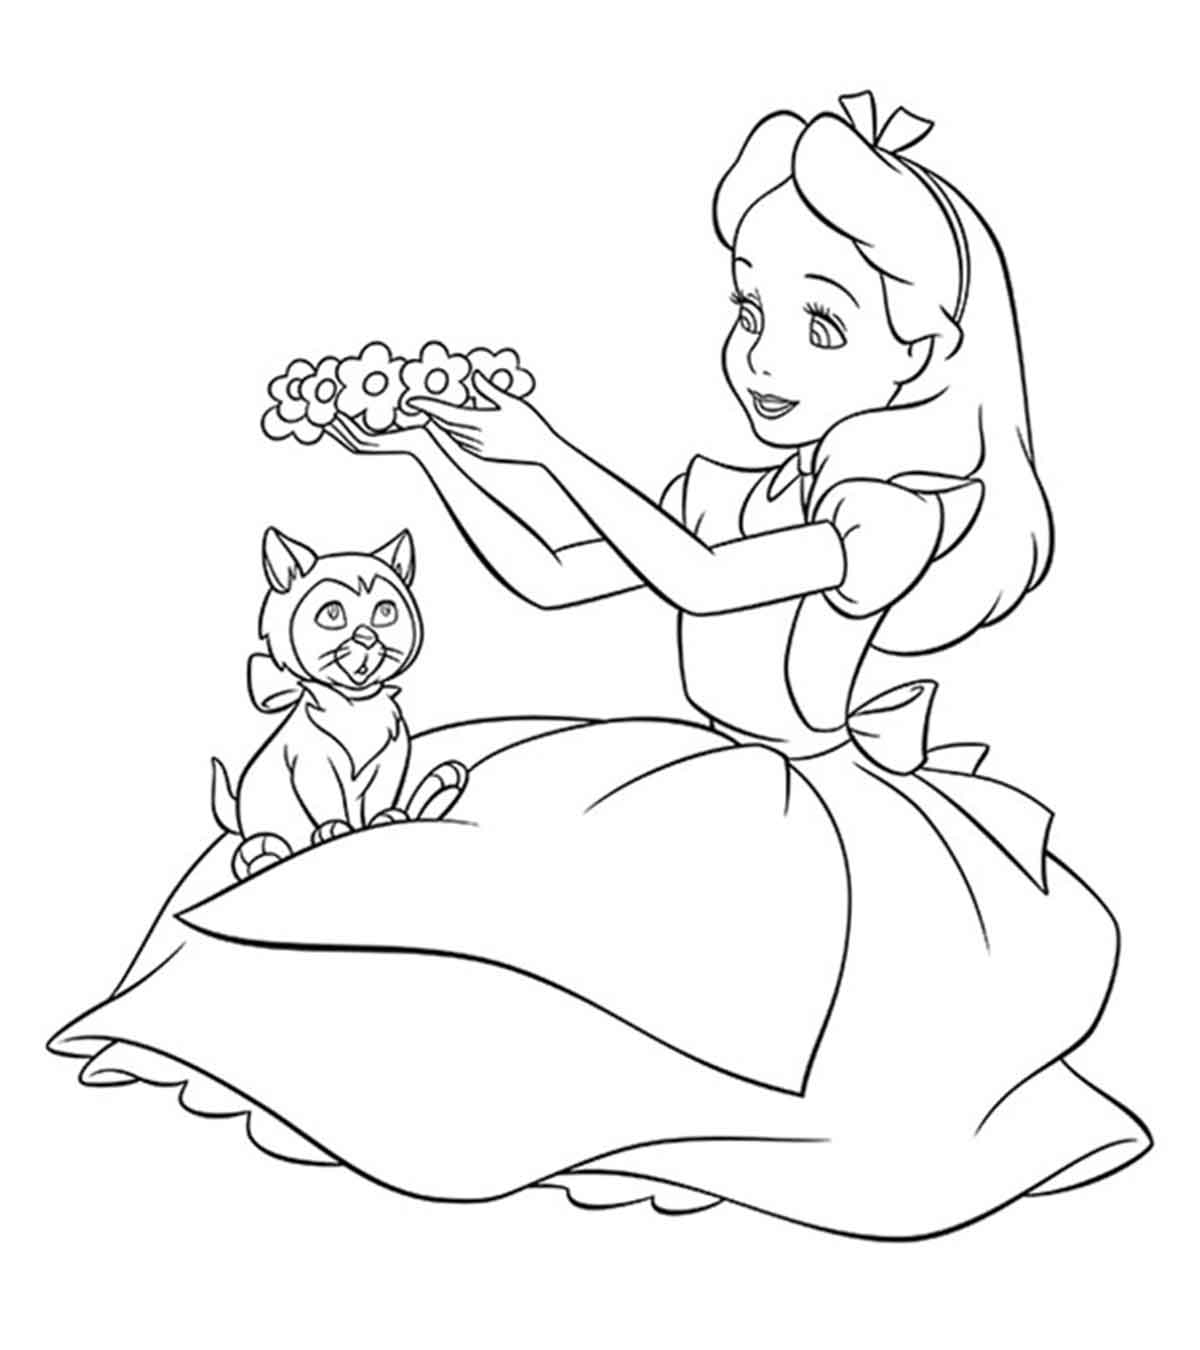 Coloring Disney Pages Disney Coloring Pages For Your Little Ones